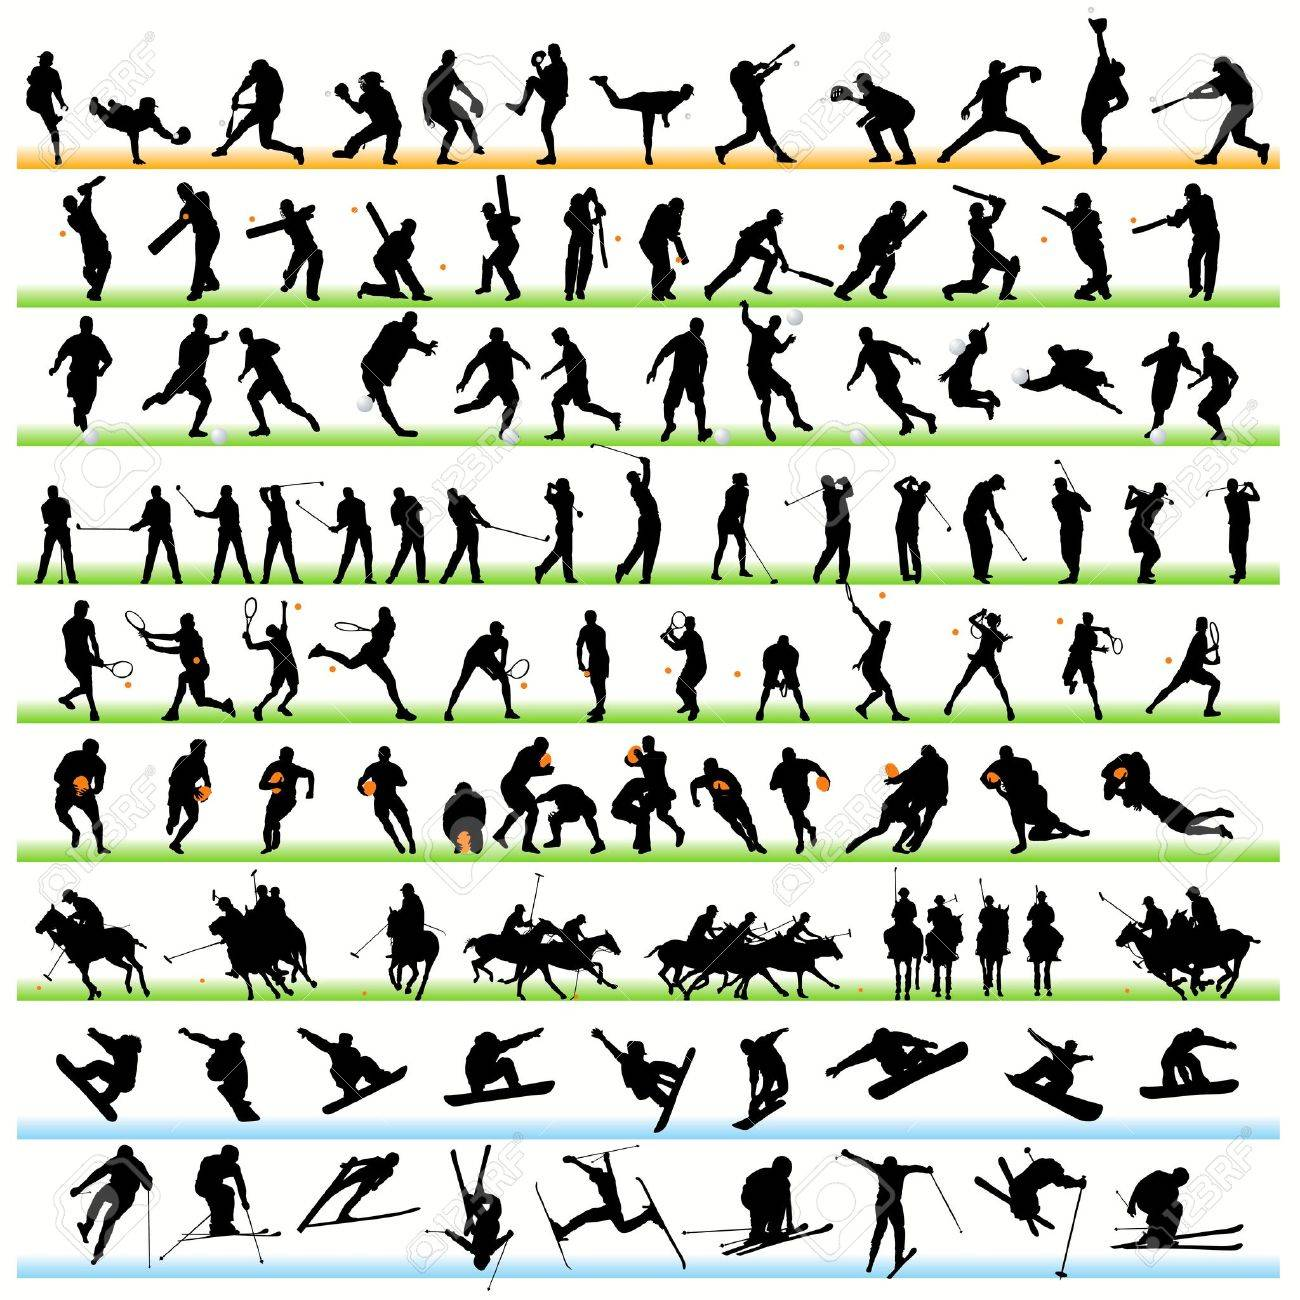 Sport silhouettes set.01 Stock Vector - 9903927